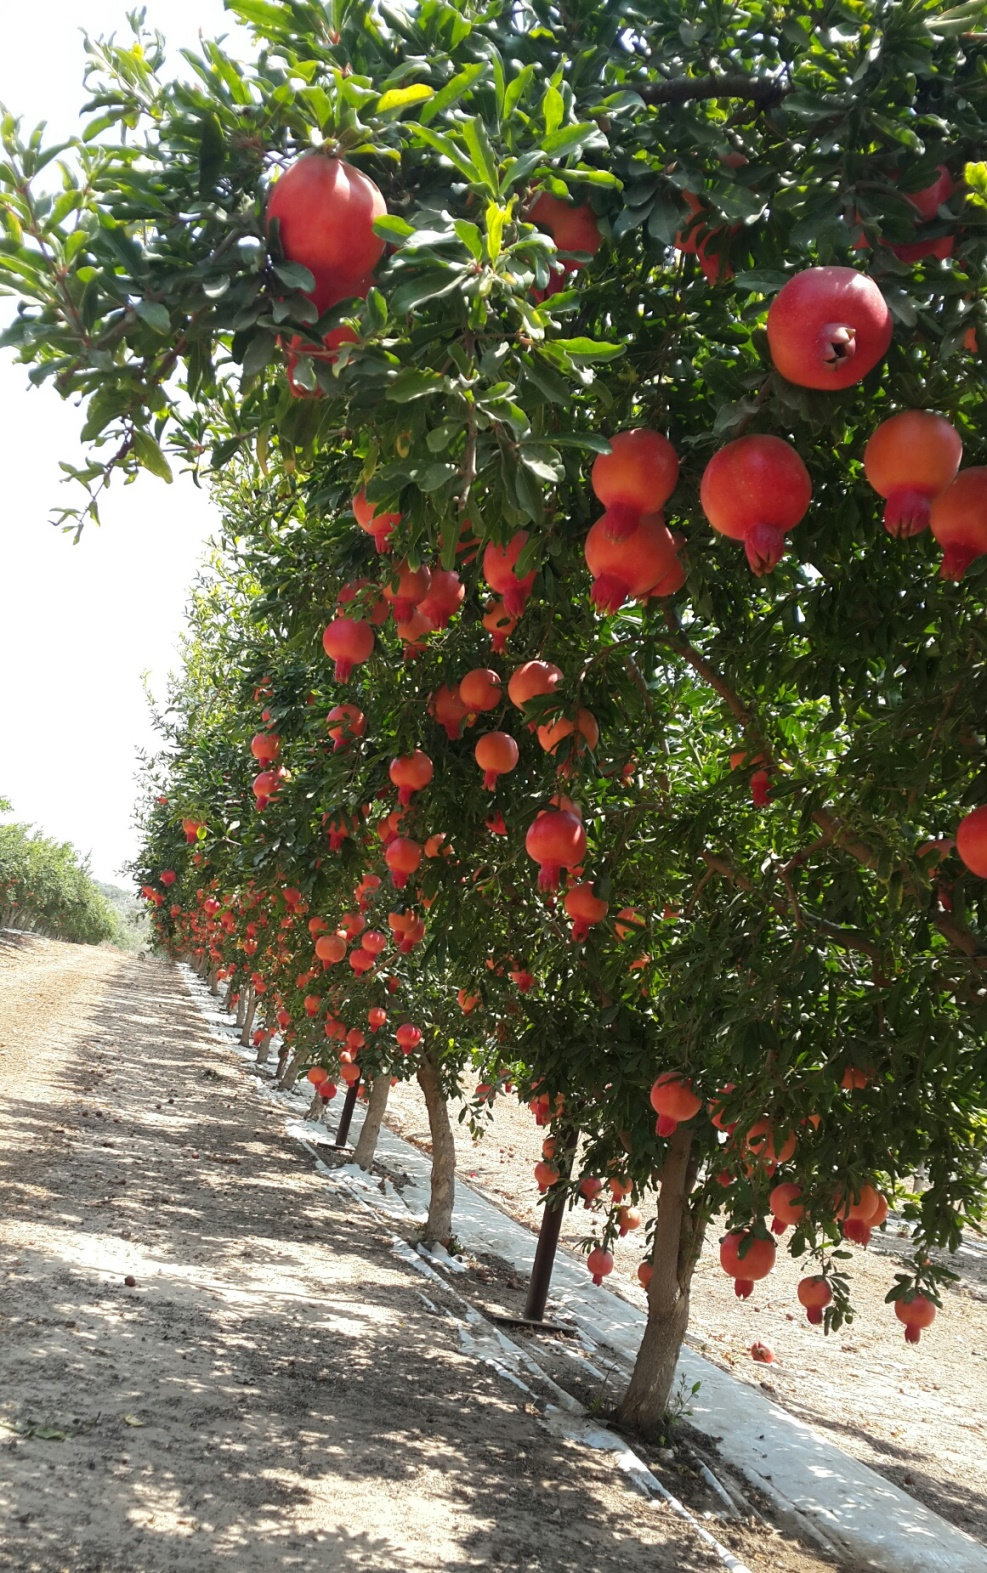 The Emek pomegranate cultivar developed in Israel yields fruit unusually early in the season. Photo courtesy of Newe Ya'ar Research Center